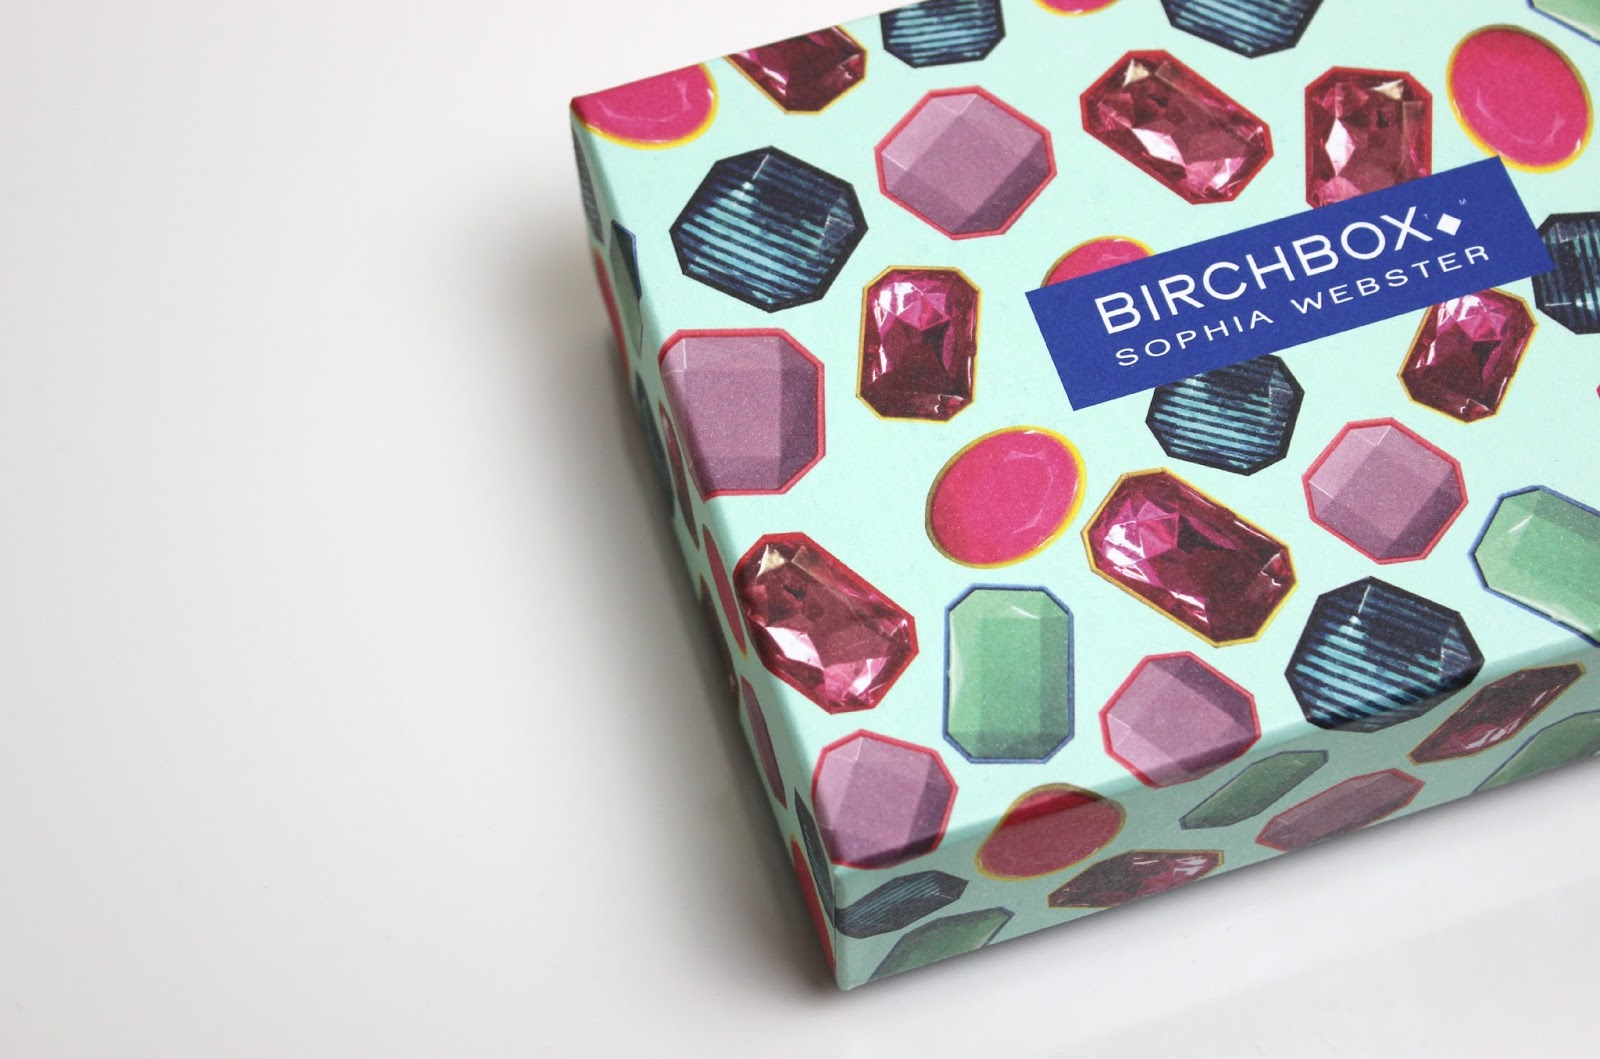 A picture of the December Birchbox UK 2014